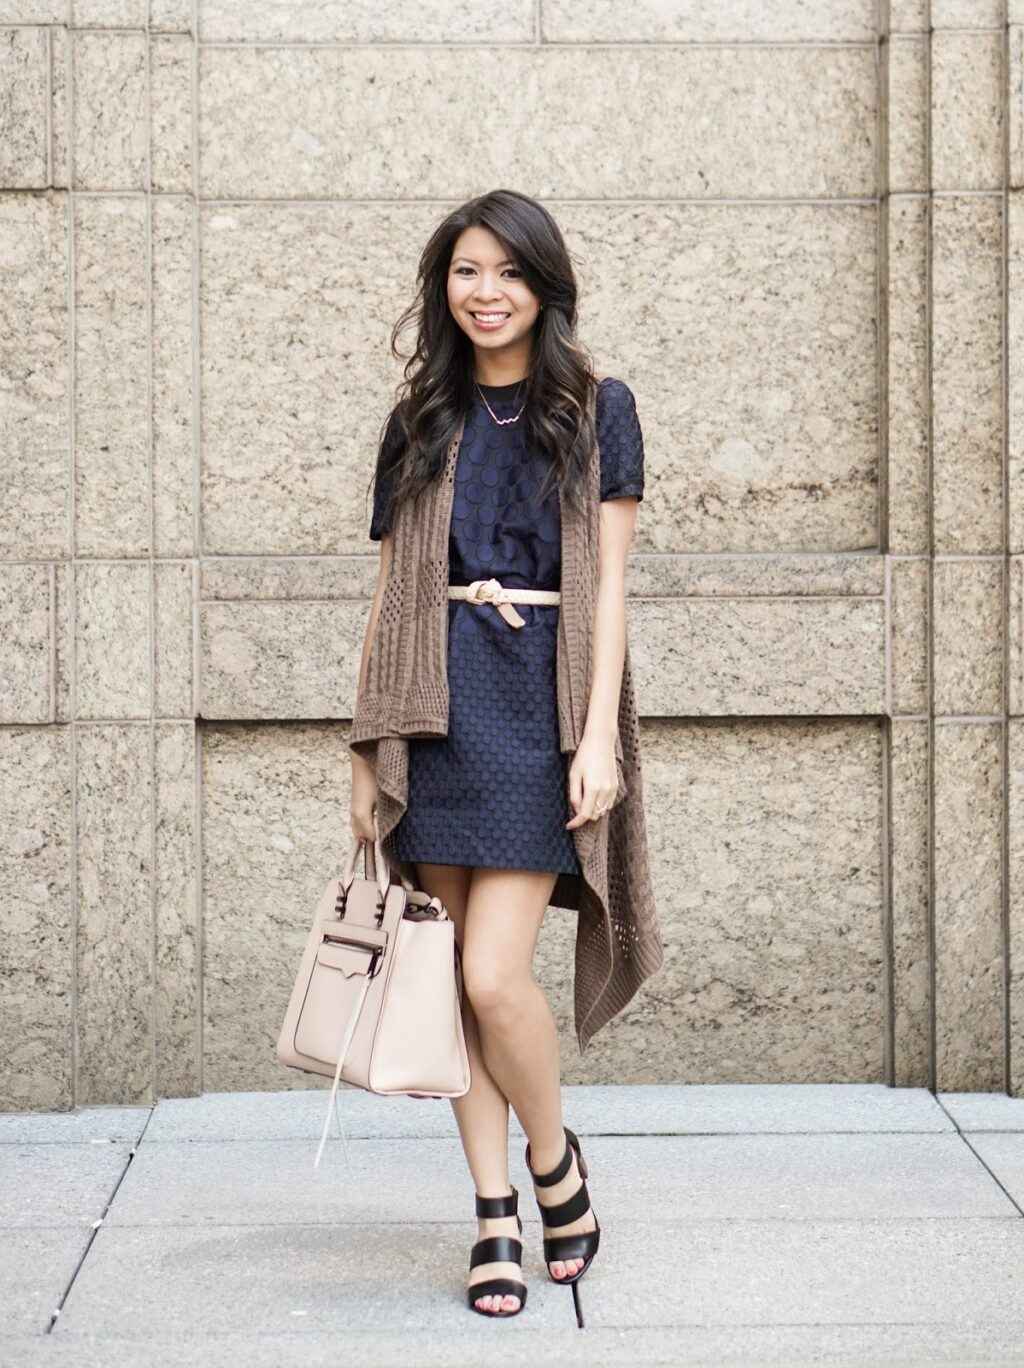 Warm Winter Day Remix: Polka Dot Dress and Long Cardigan | Just a ...